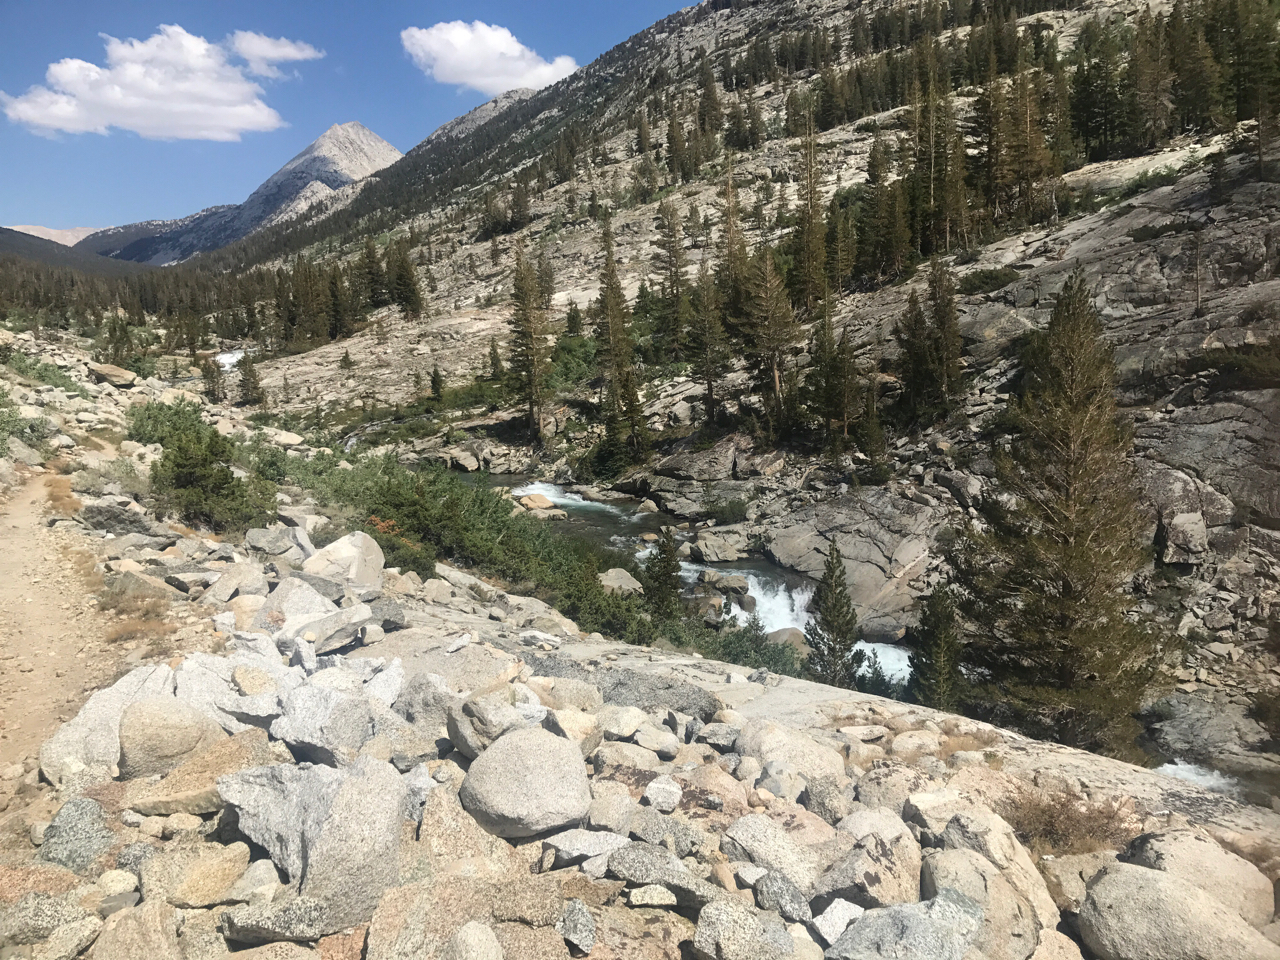 Piute Creek